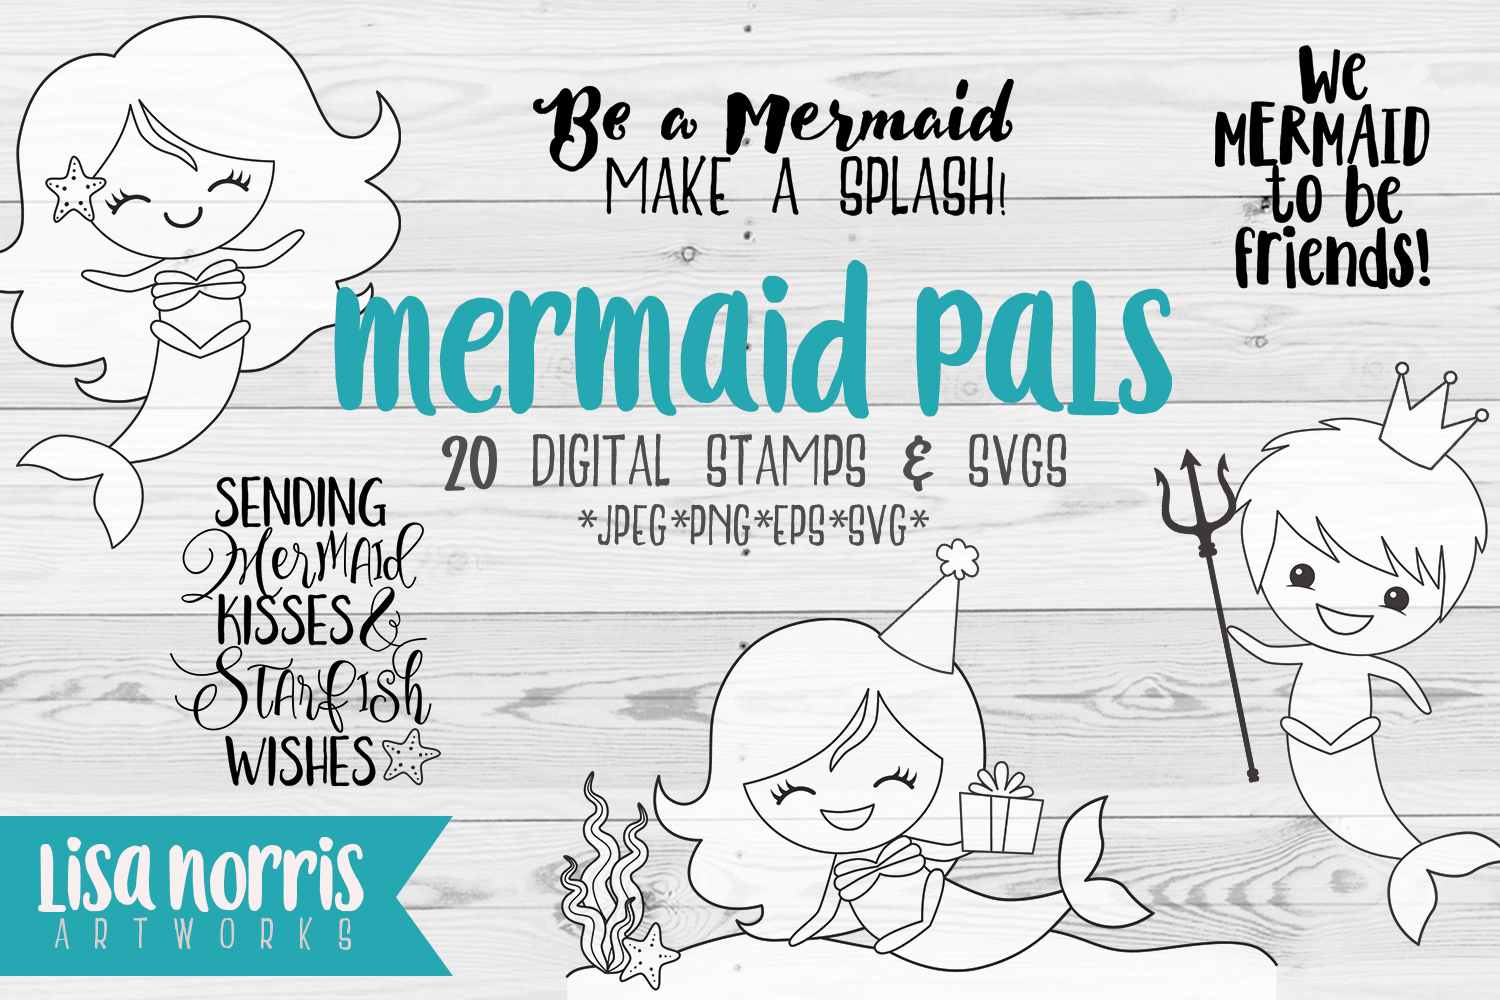 Mermaid Pals Digital Stamps And Svg Cutting Files Graphic By